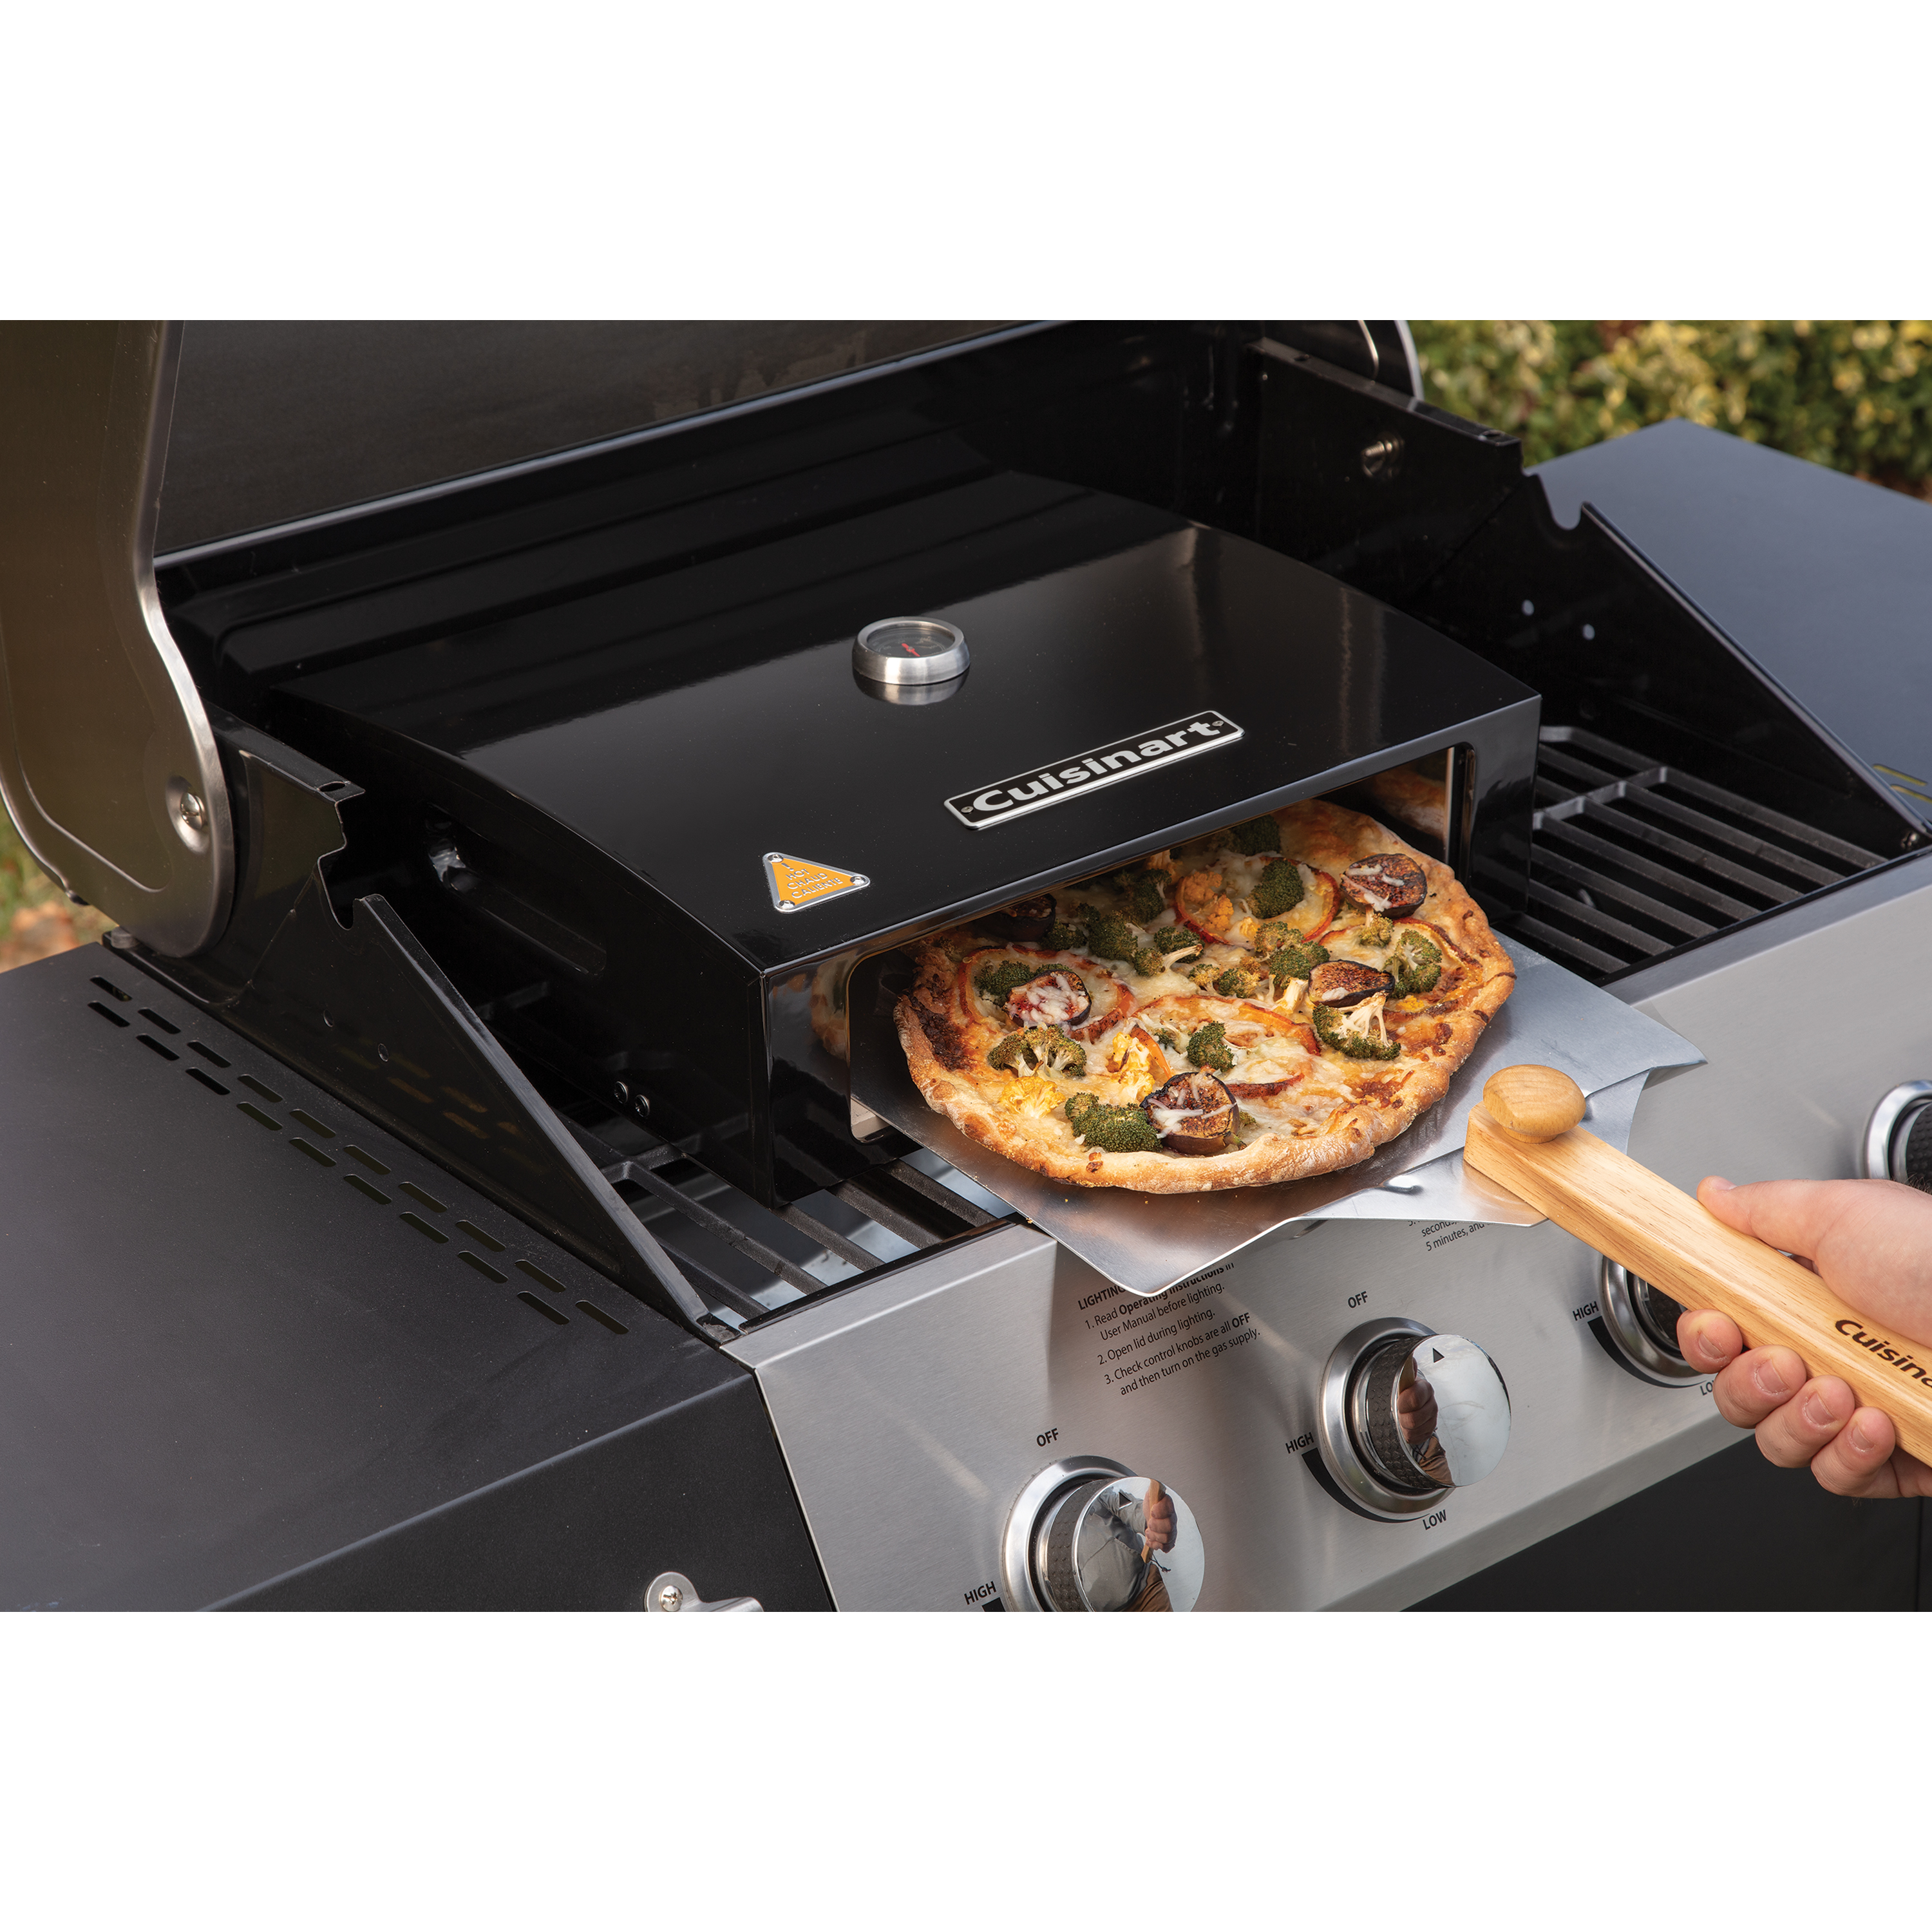 Grill Top Pizza Oven Kit